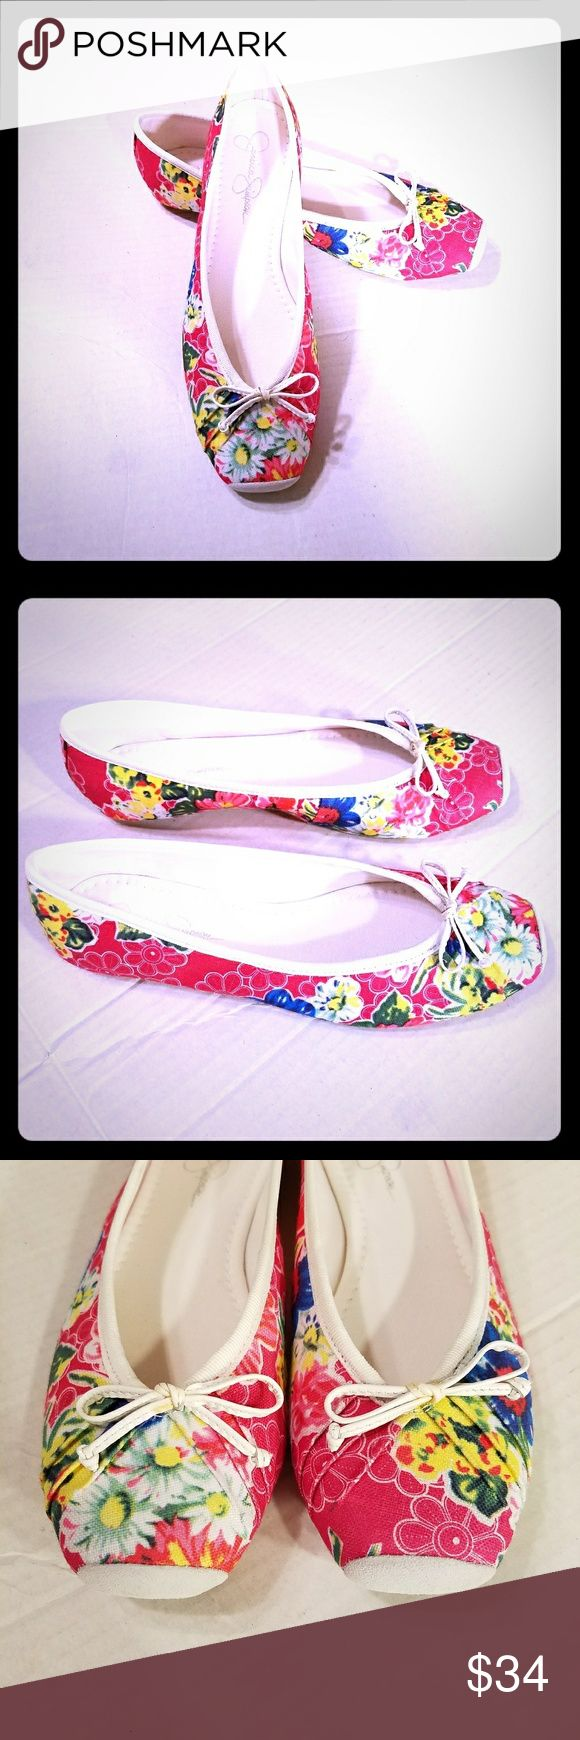 NEW Sz 6.5M Jessica Simpson floral ballet flats Jessica Simpson Leve Hawaiian Floral Canvas Pink Ballet Flats Square Toe 6.5M See pics for details  Retail $60 Jessica Simpson Shoes Flats & Loafers